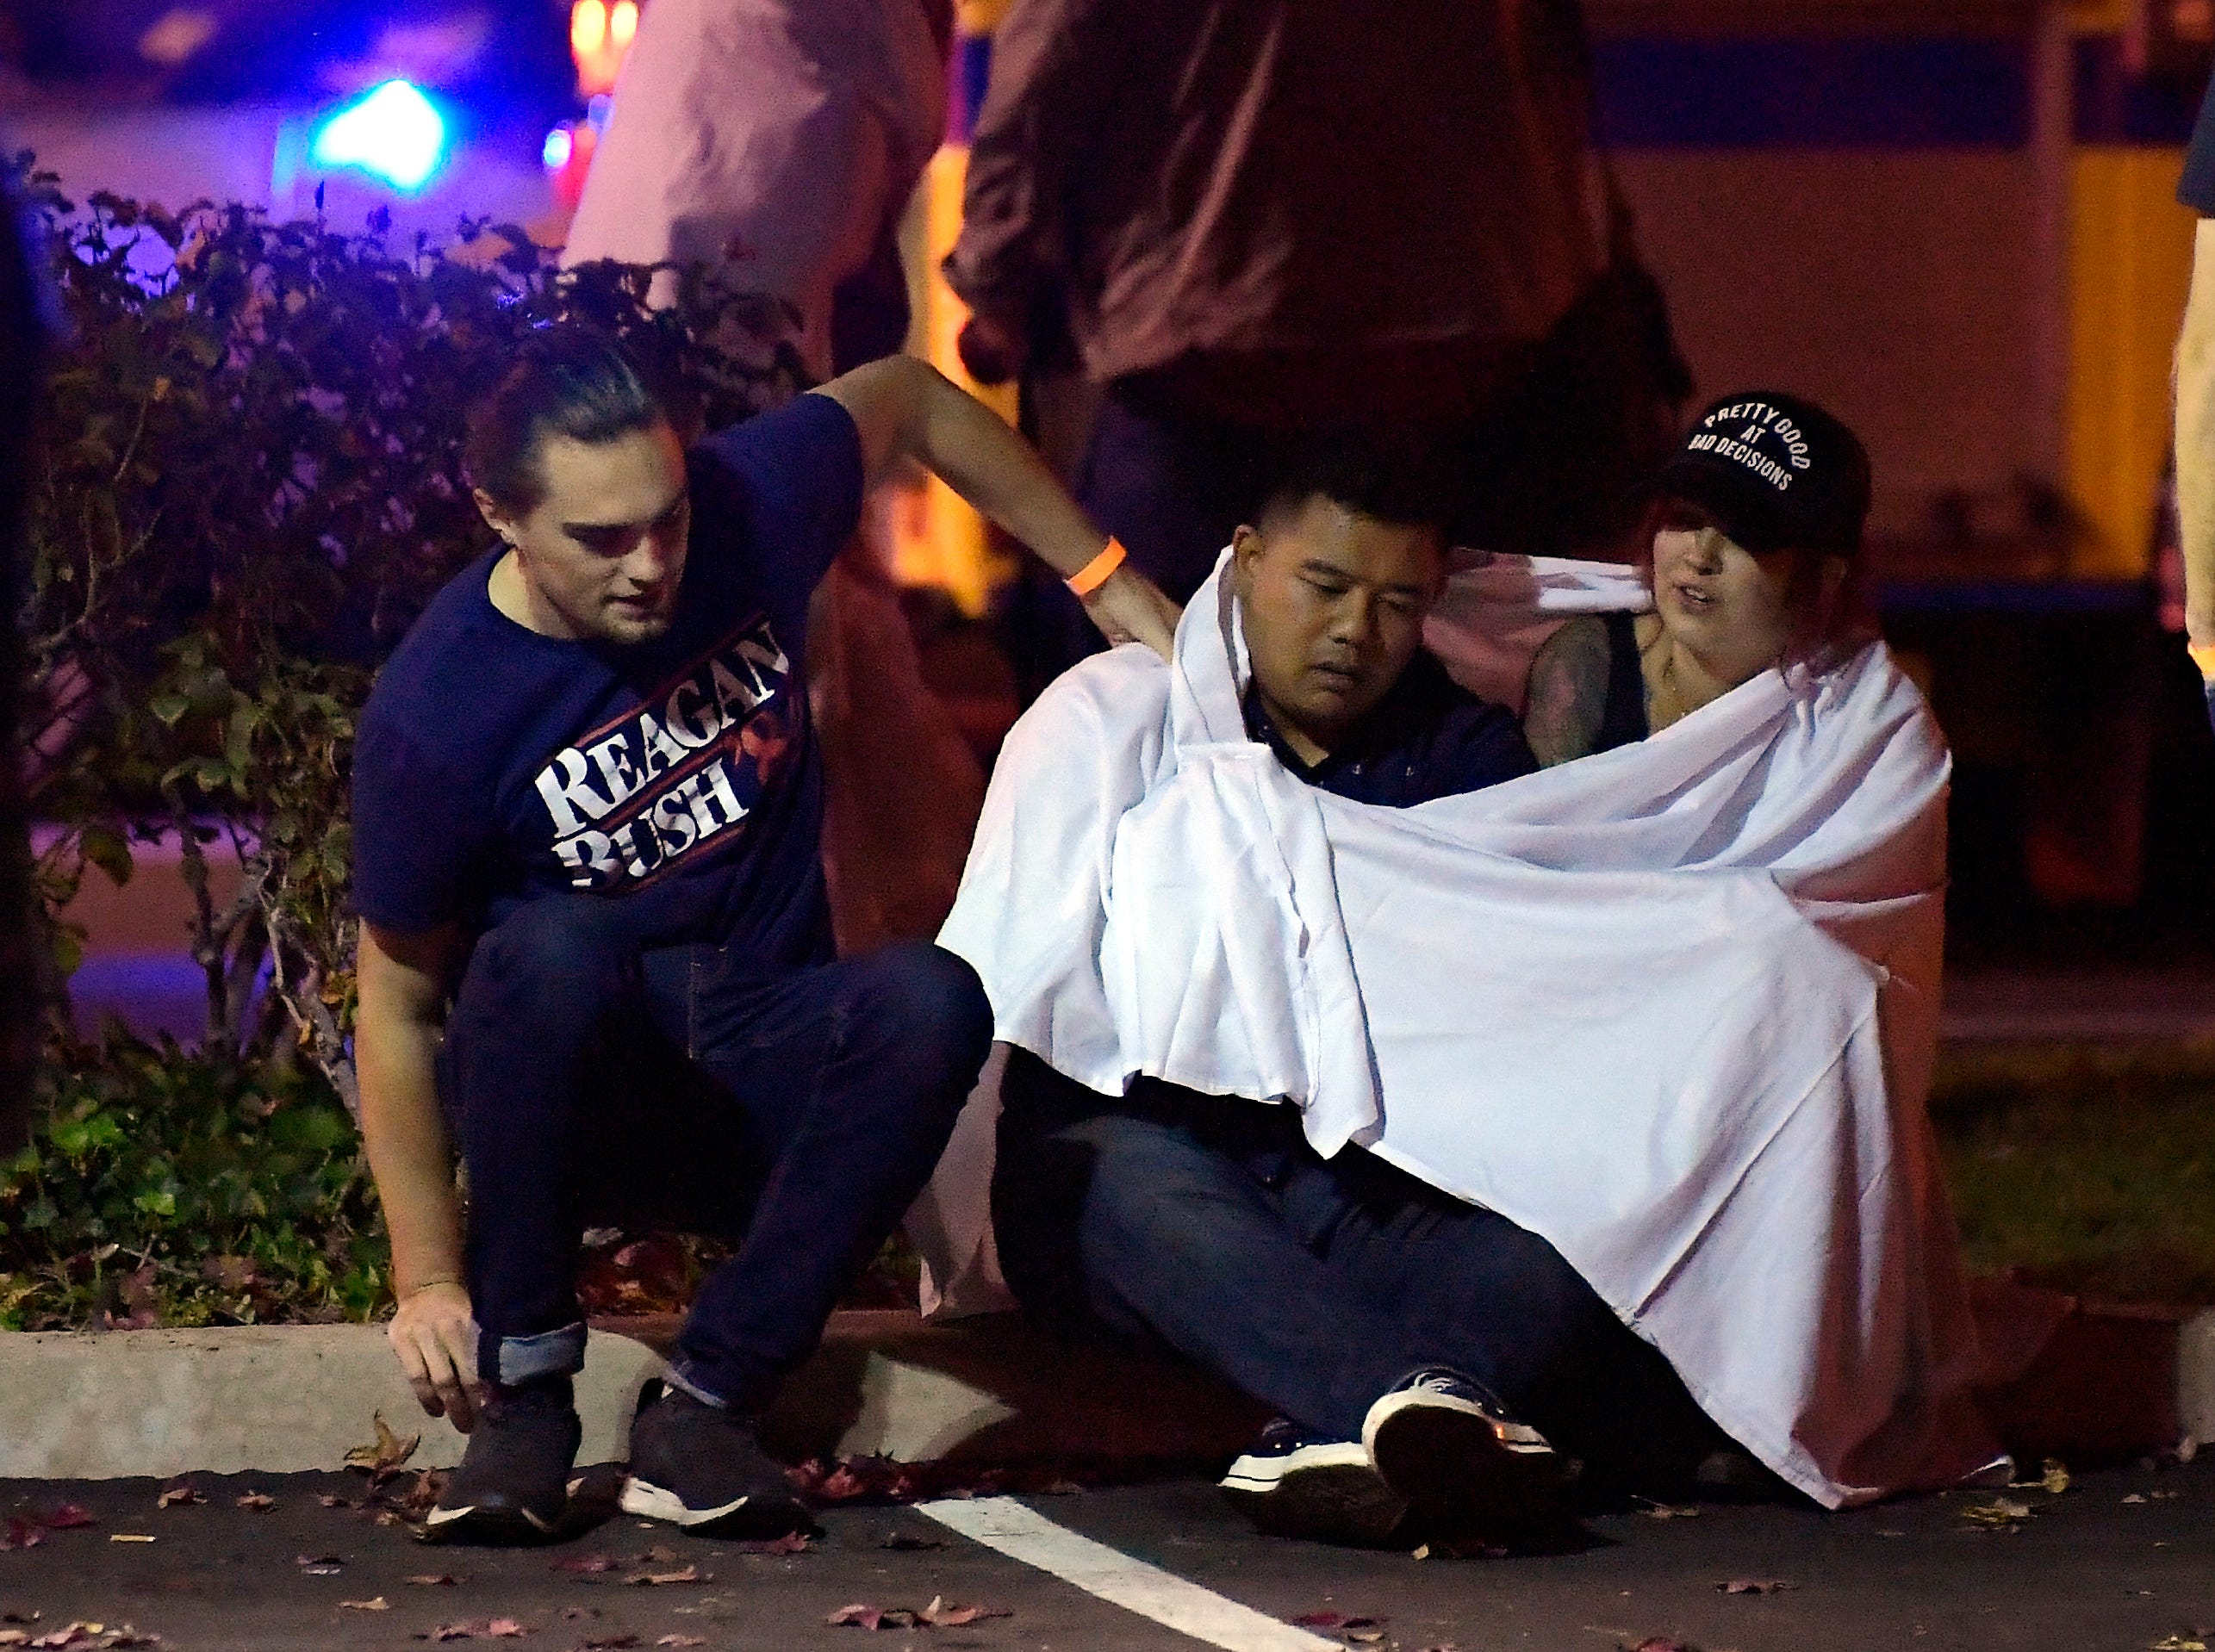 People comfort each other as they sit near the scene Thursday in Thousand Oaks where a gunman opened fire Wednesday inside the Borderline Bar & Grill that was crowded with hundreds of people.